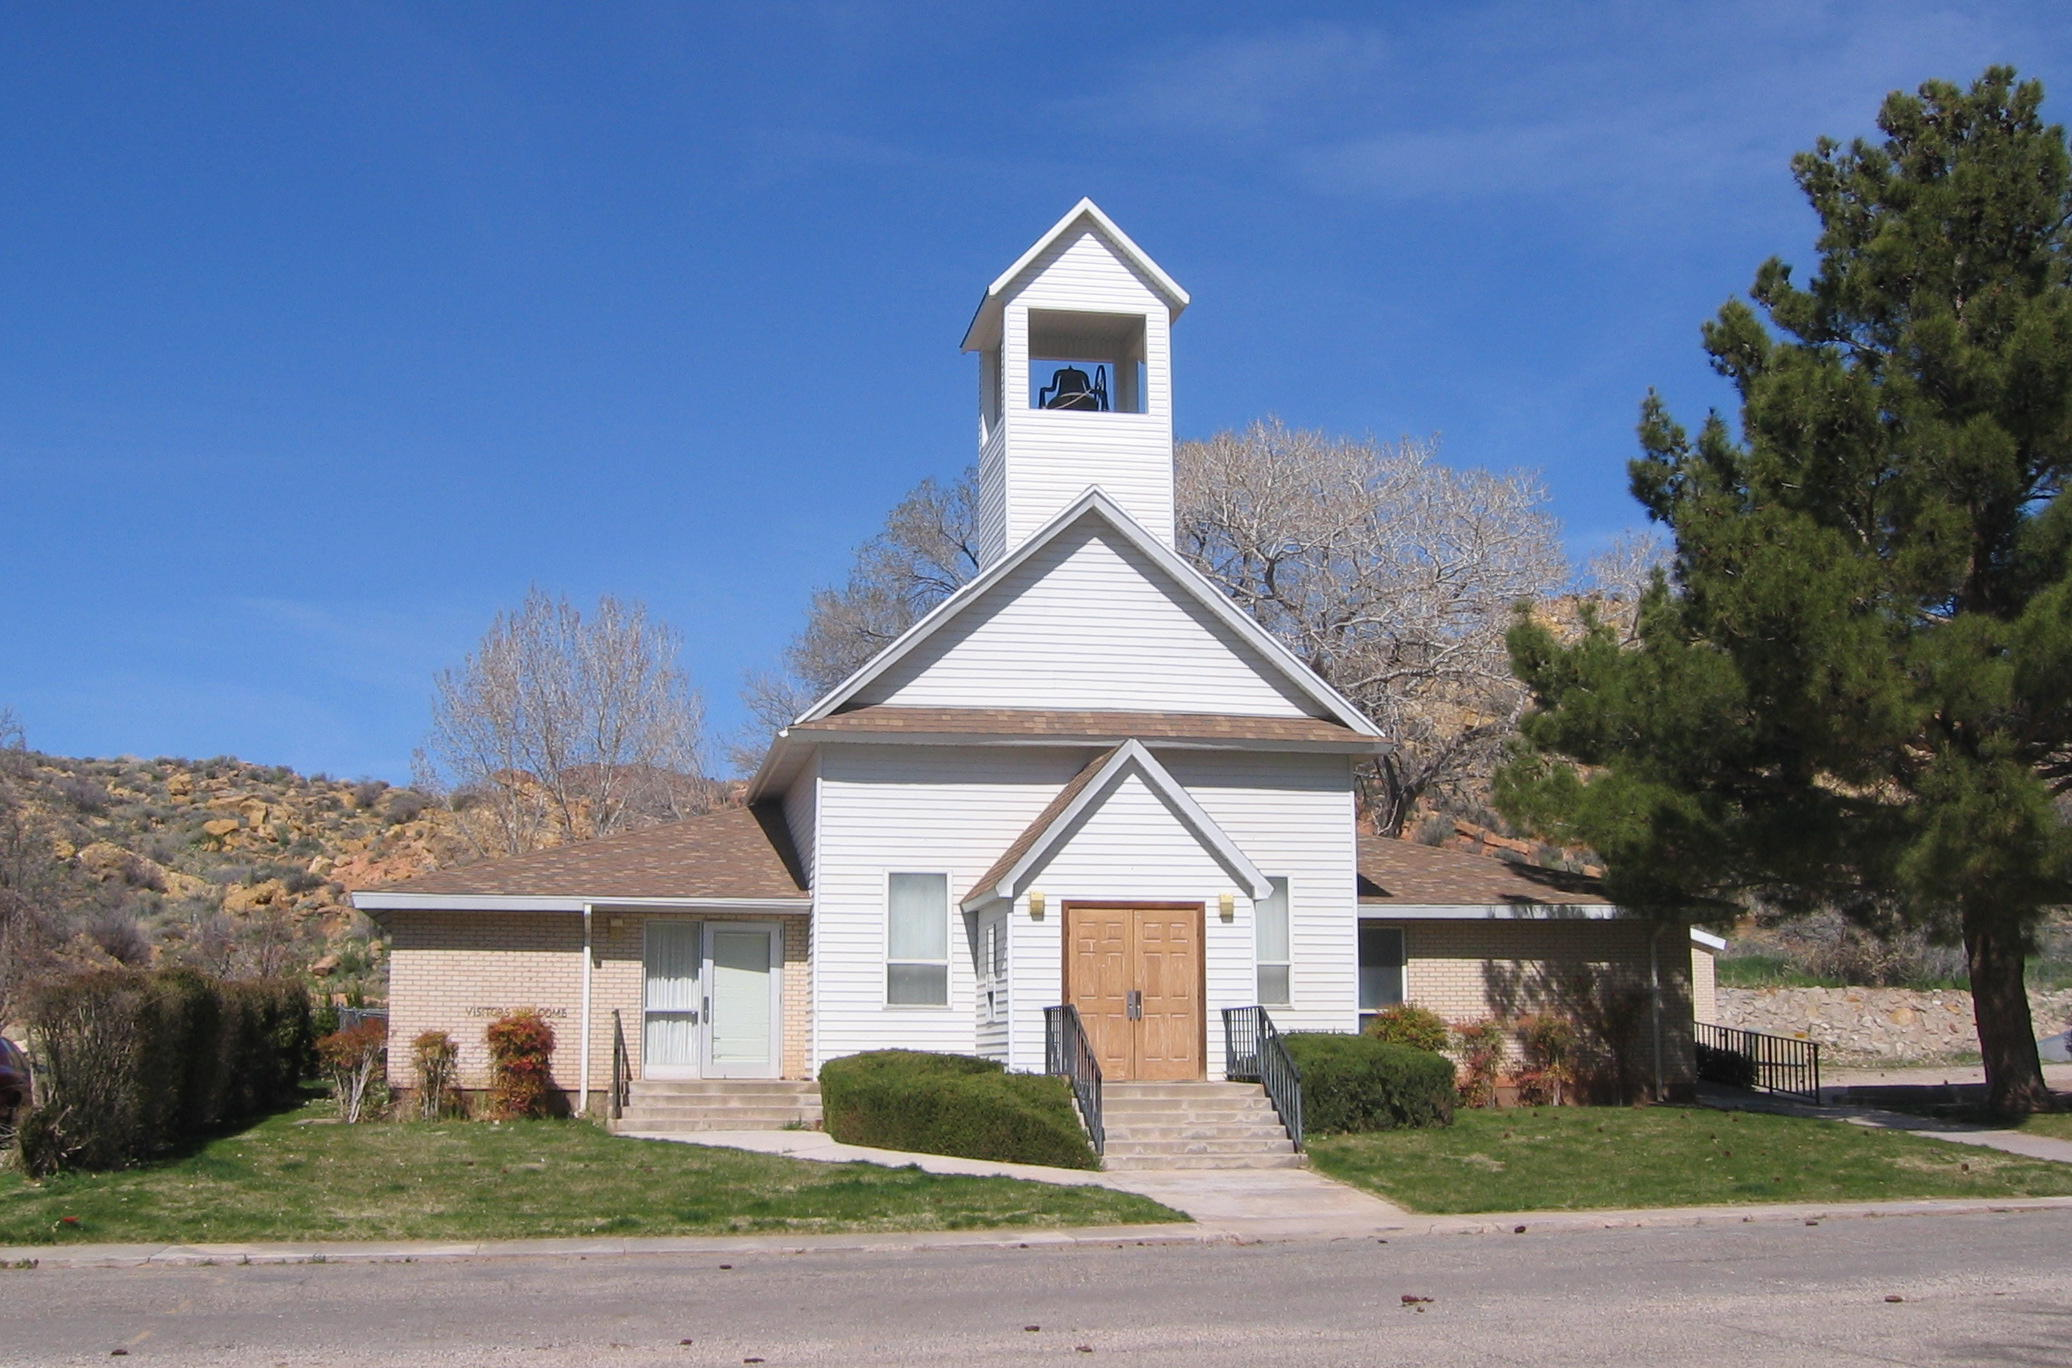 WCHS-00626 Old Gunlock church